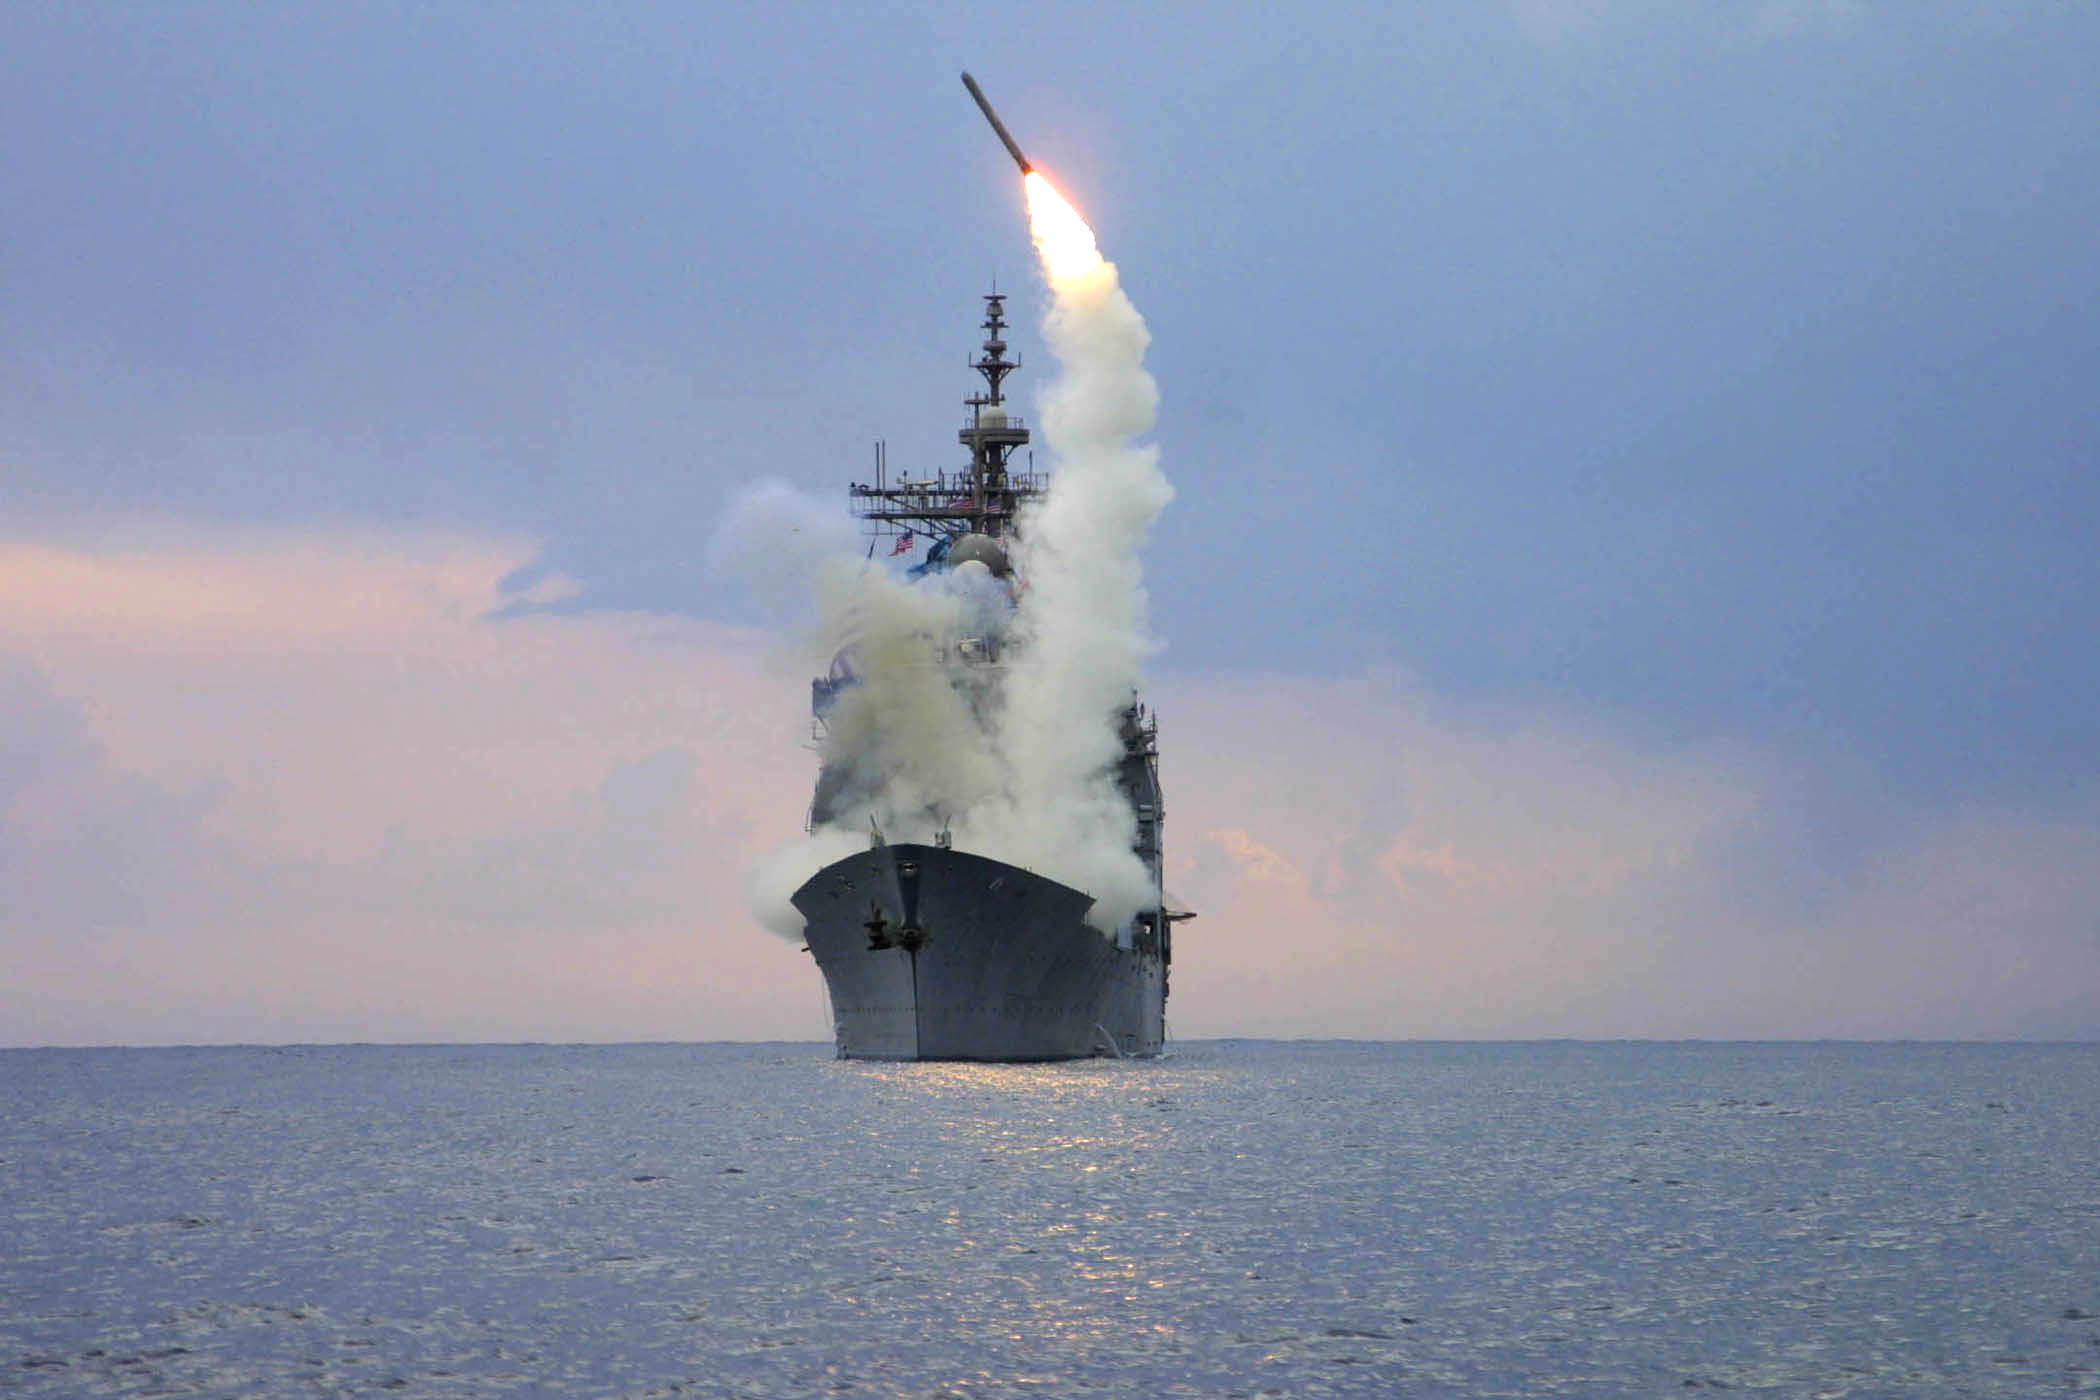 At sea aboard USS Cape St. George (CG 71) Mar. 23, 2003 -- A Tomahawk Land Attack Missile (TLAM) is launched from the guided missile cruiser USS Cape St. George. Cape St. George is operating in the eastern Med